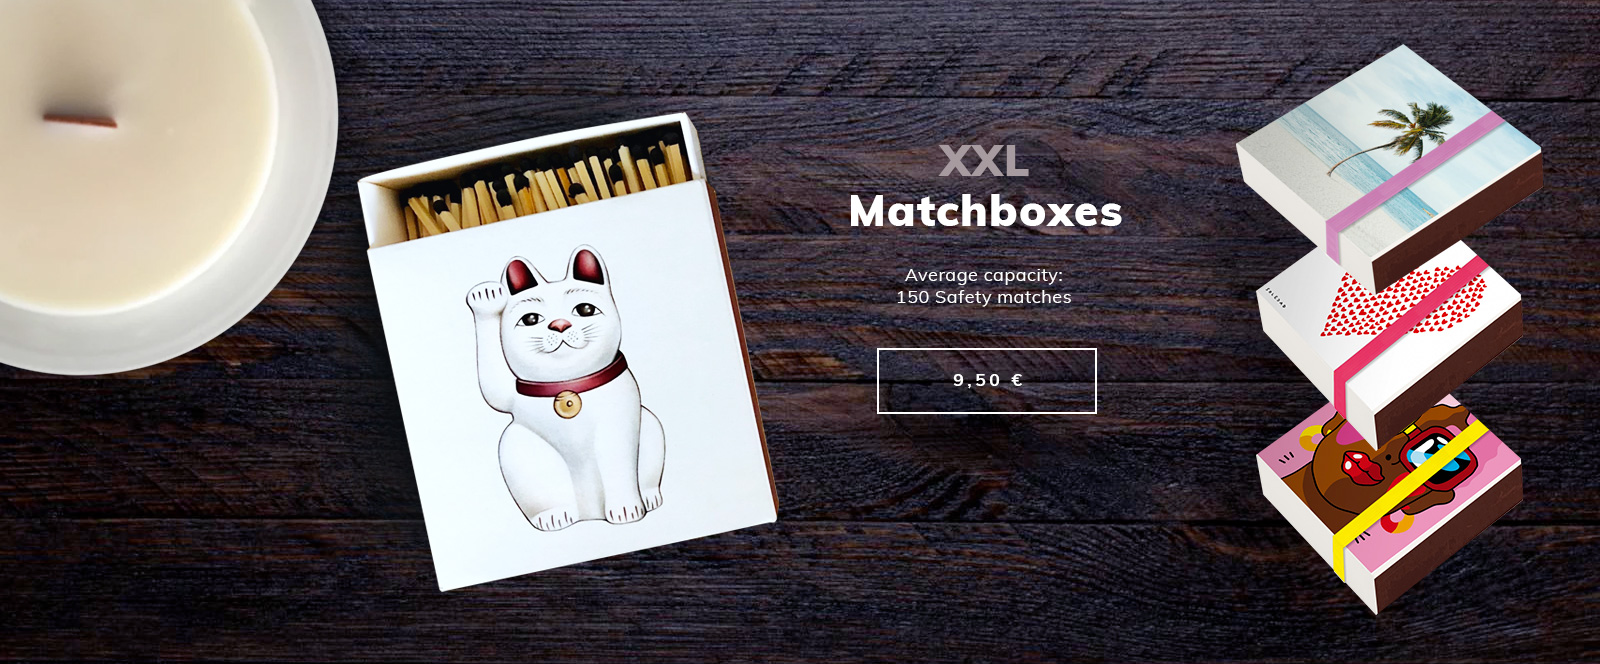 New - Matchboxes by Image Republic.